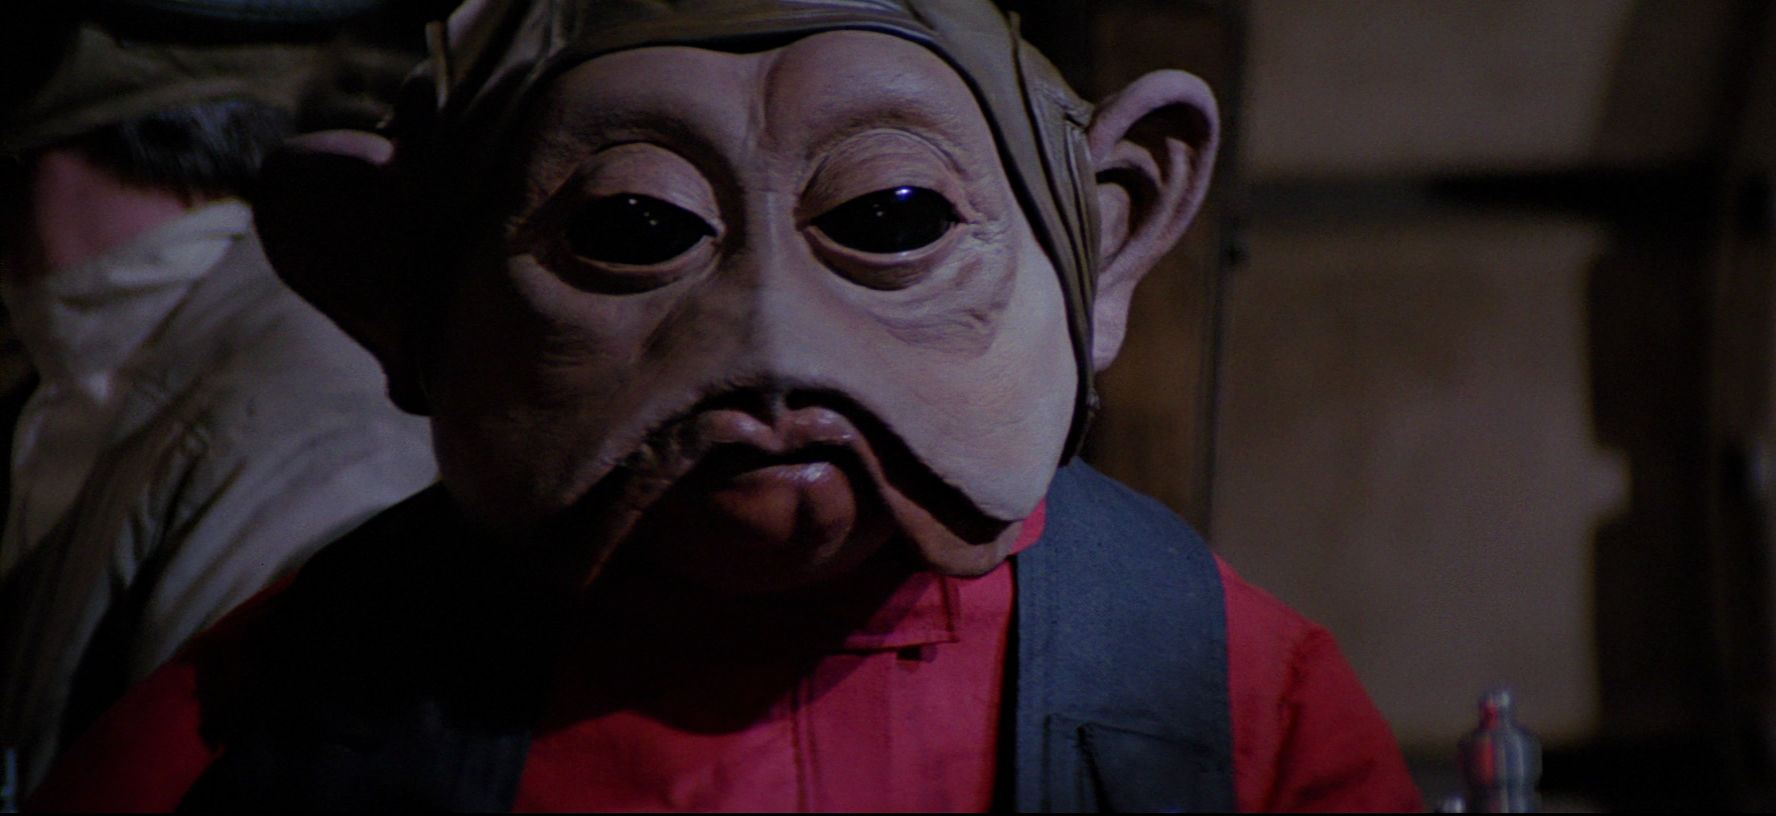 Richard Bonehill Nien Nunb Star Wars Battlefront Sequel Confirmed, Will Tie In To New Movies